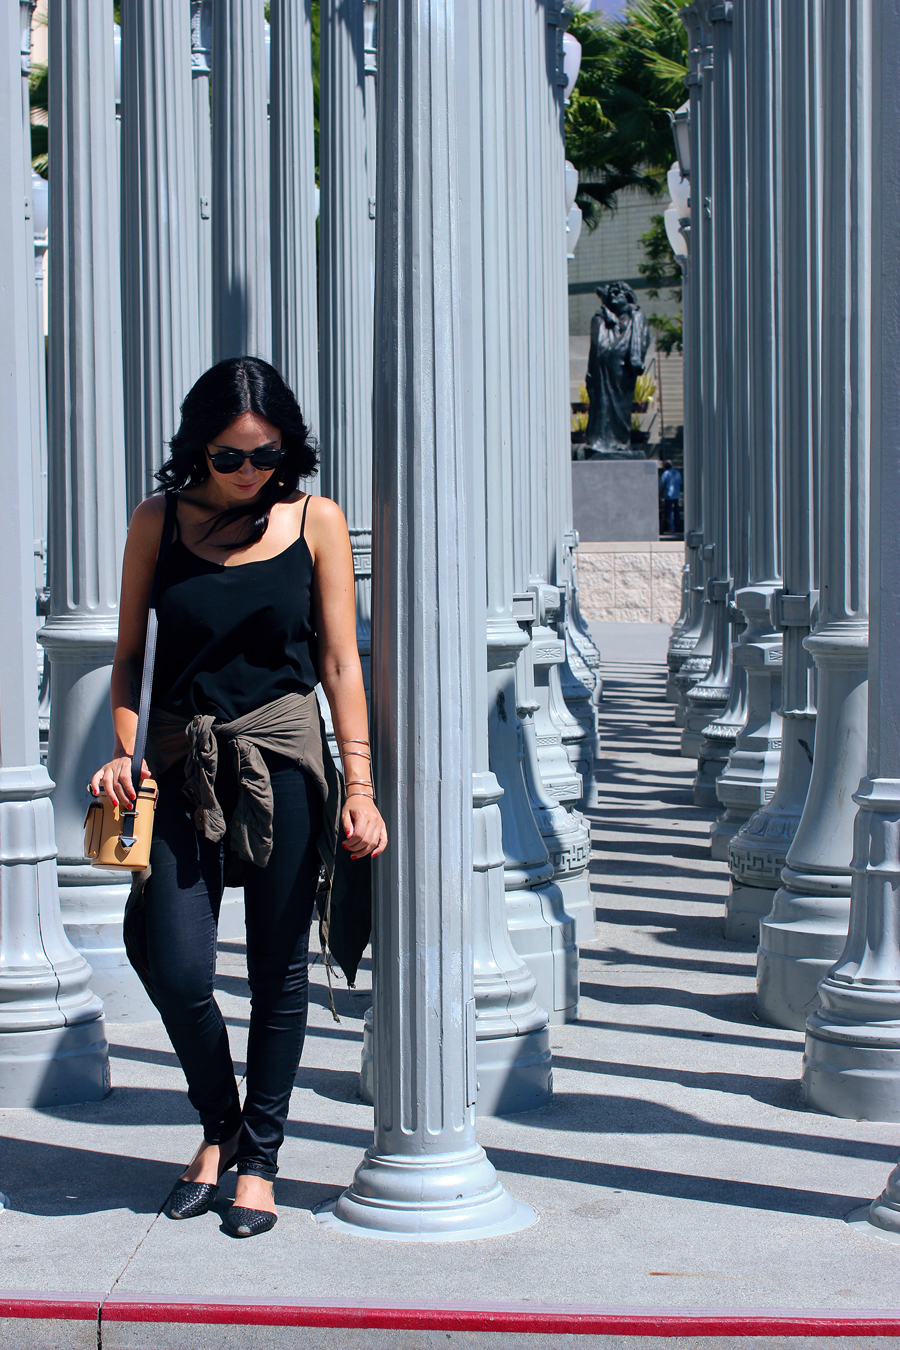 FIXIN-TO-THRILL-CALIFORNIA-VACATION-LACMA-URBAN-LIGHTS-BLACK-CAMERA-BAG-REBECCA-MINKOFF-FALL-ATX-AUSTIN-STYLE-BLOG-SHIRTS-COLORS-TRENDS-FW15-TRENDY-CHIC-GLAM-FASHION-TEXAS-TRAVEL-6